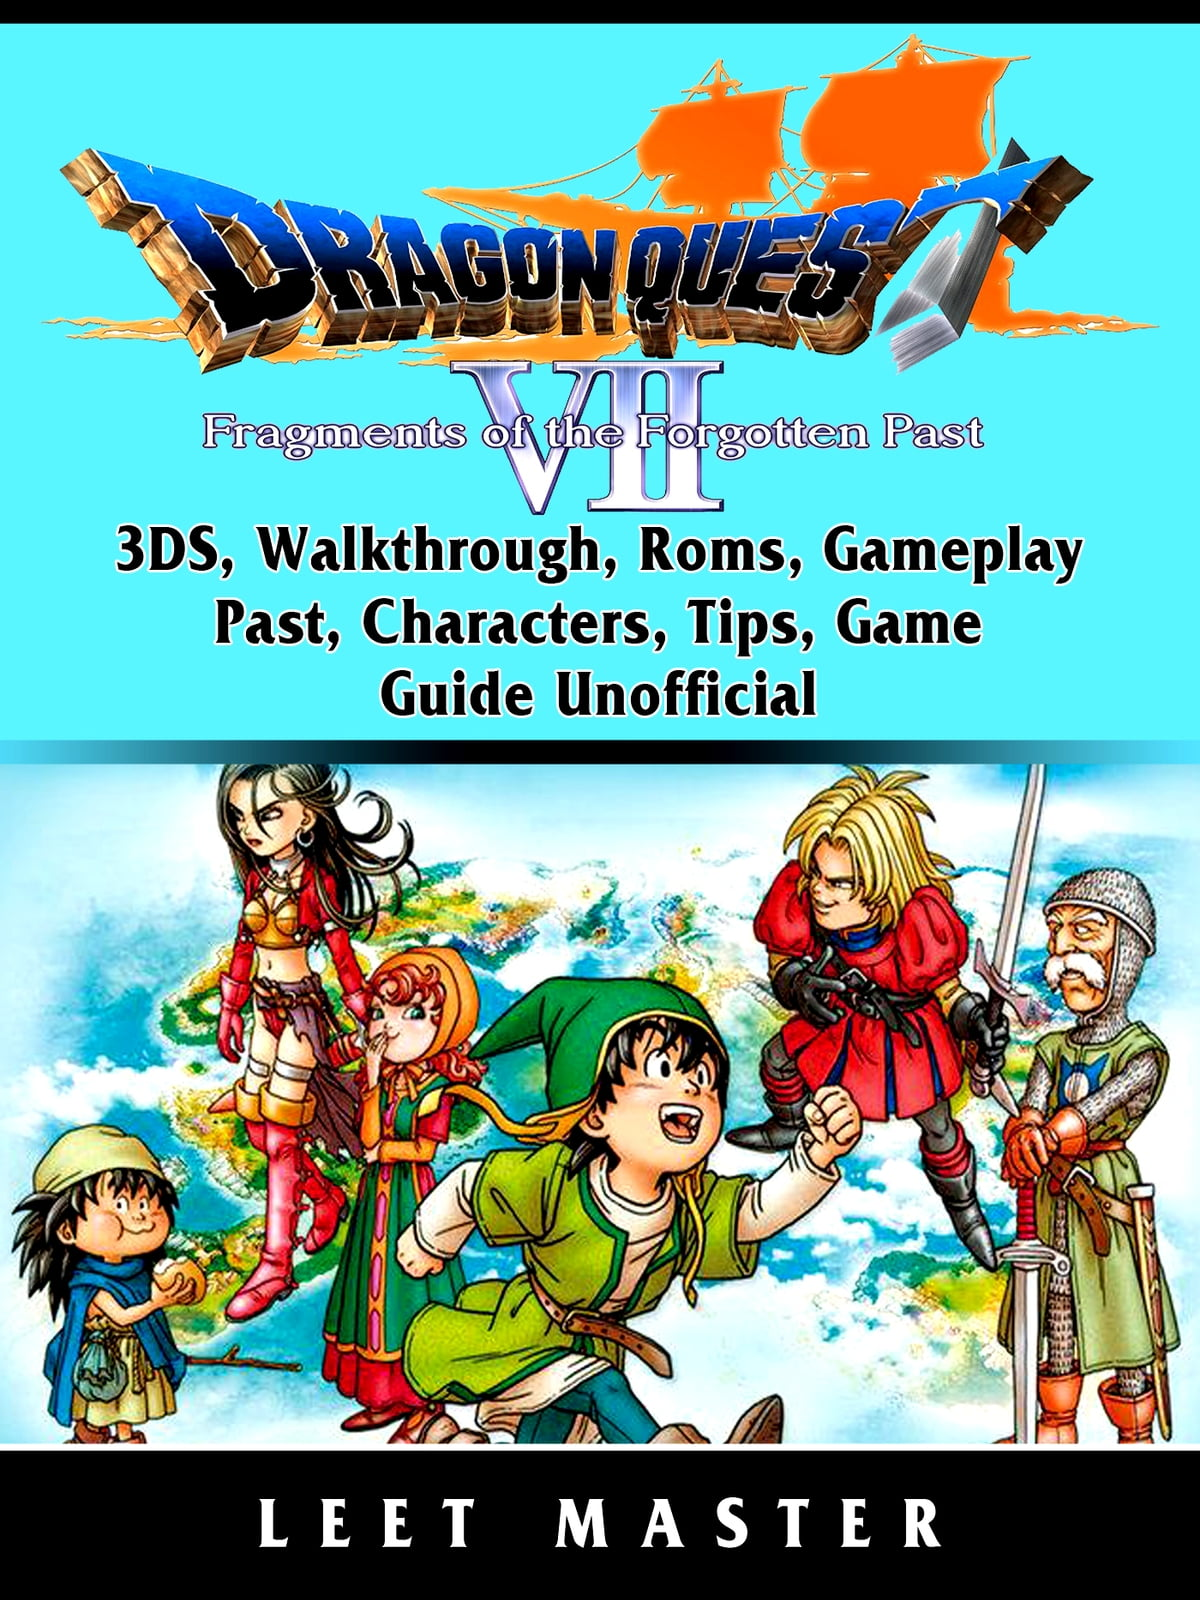 Dragon Quest VII Fragments of a Forgotten Past, 3DS, Walkthrough, Roms,  Gameplay, Past, Characters, Tips, Game Guide Unofficial ebook by Leet  Master -